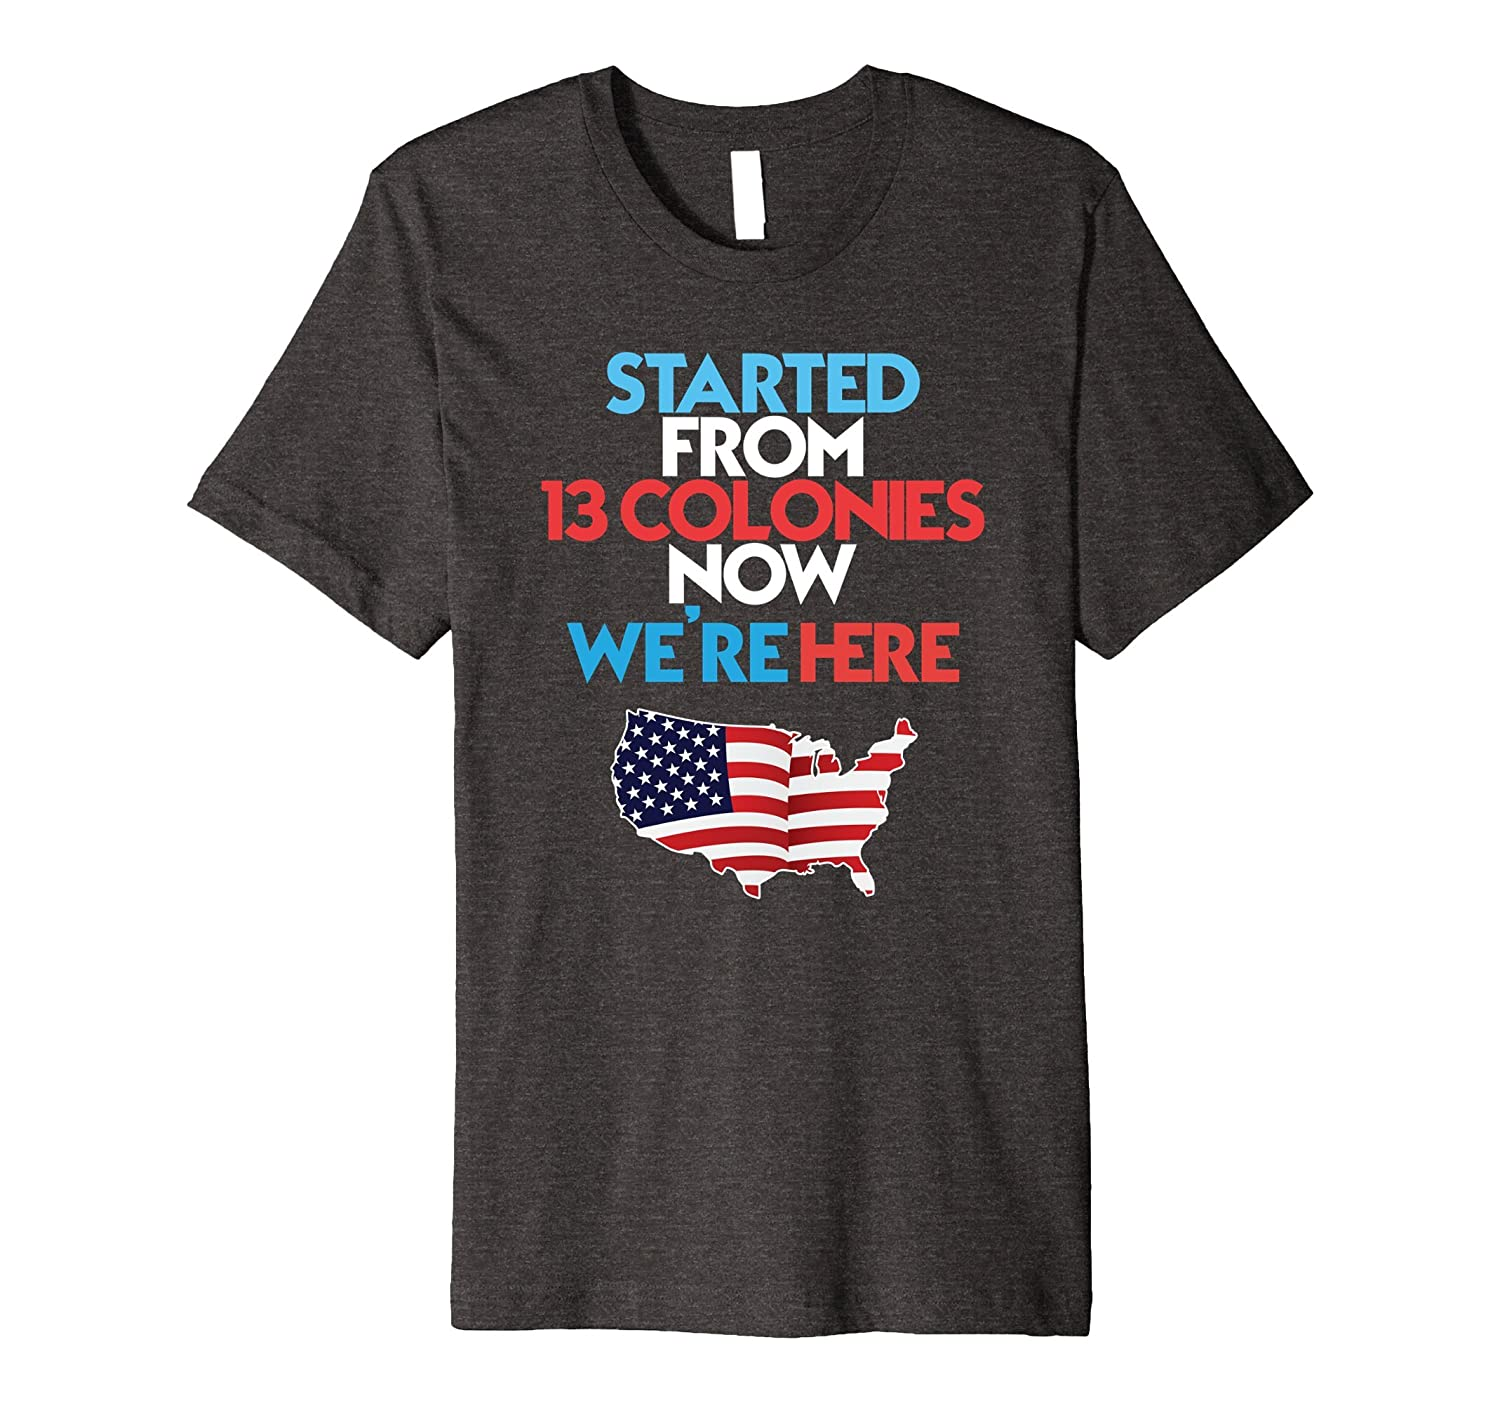 Started From 13 Colonies USA Patriotic Shirt-PL